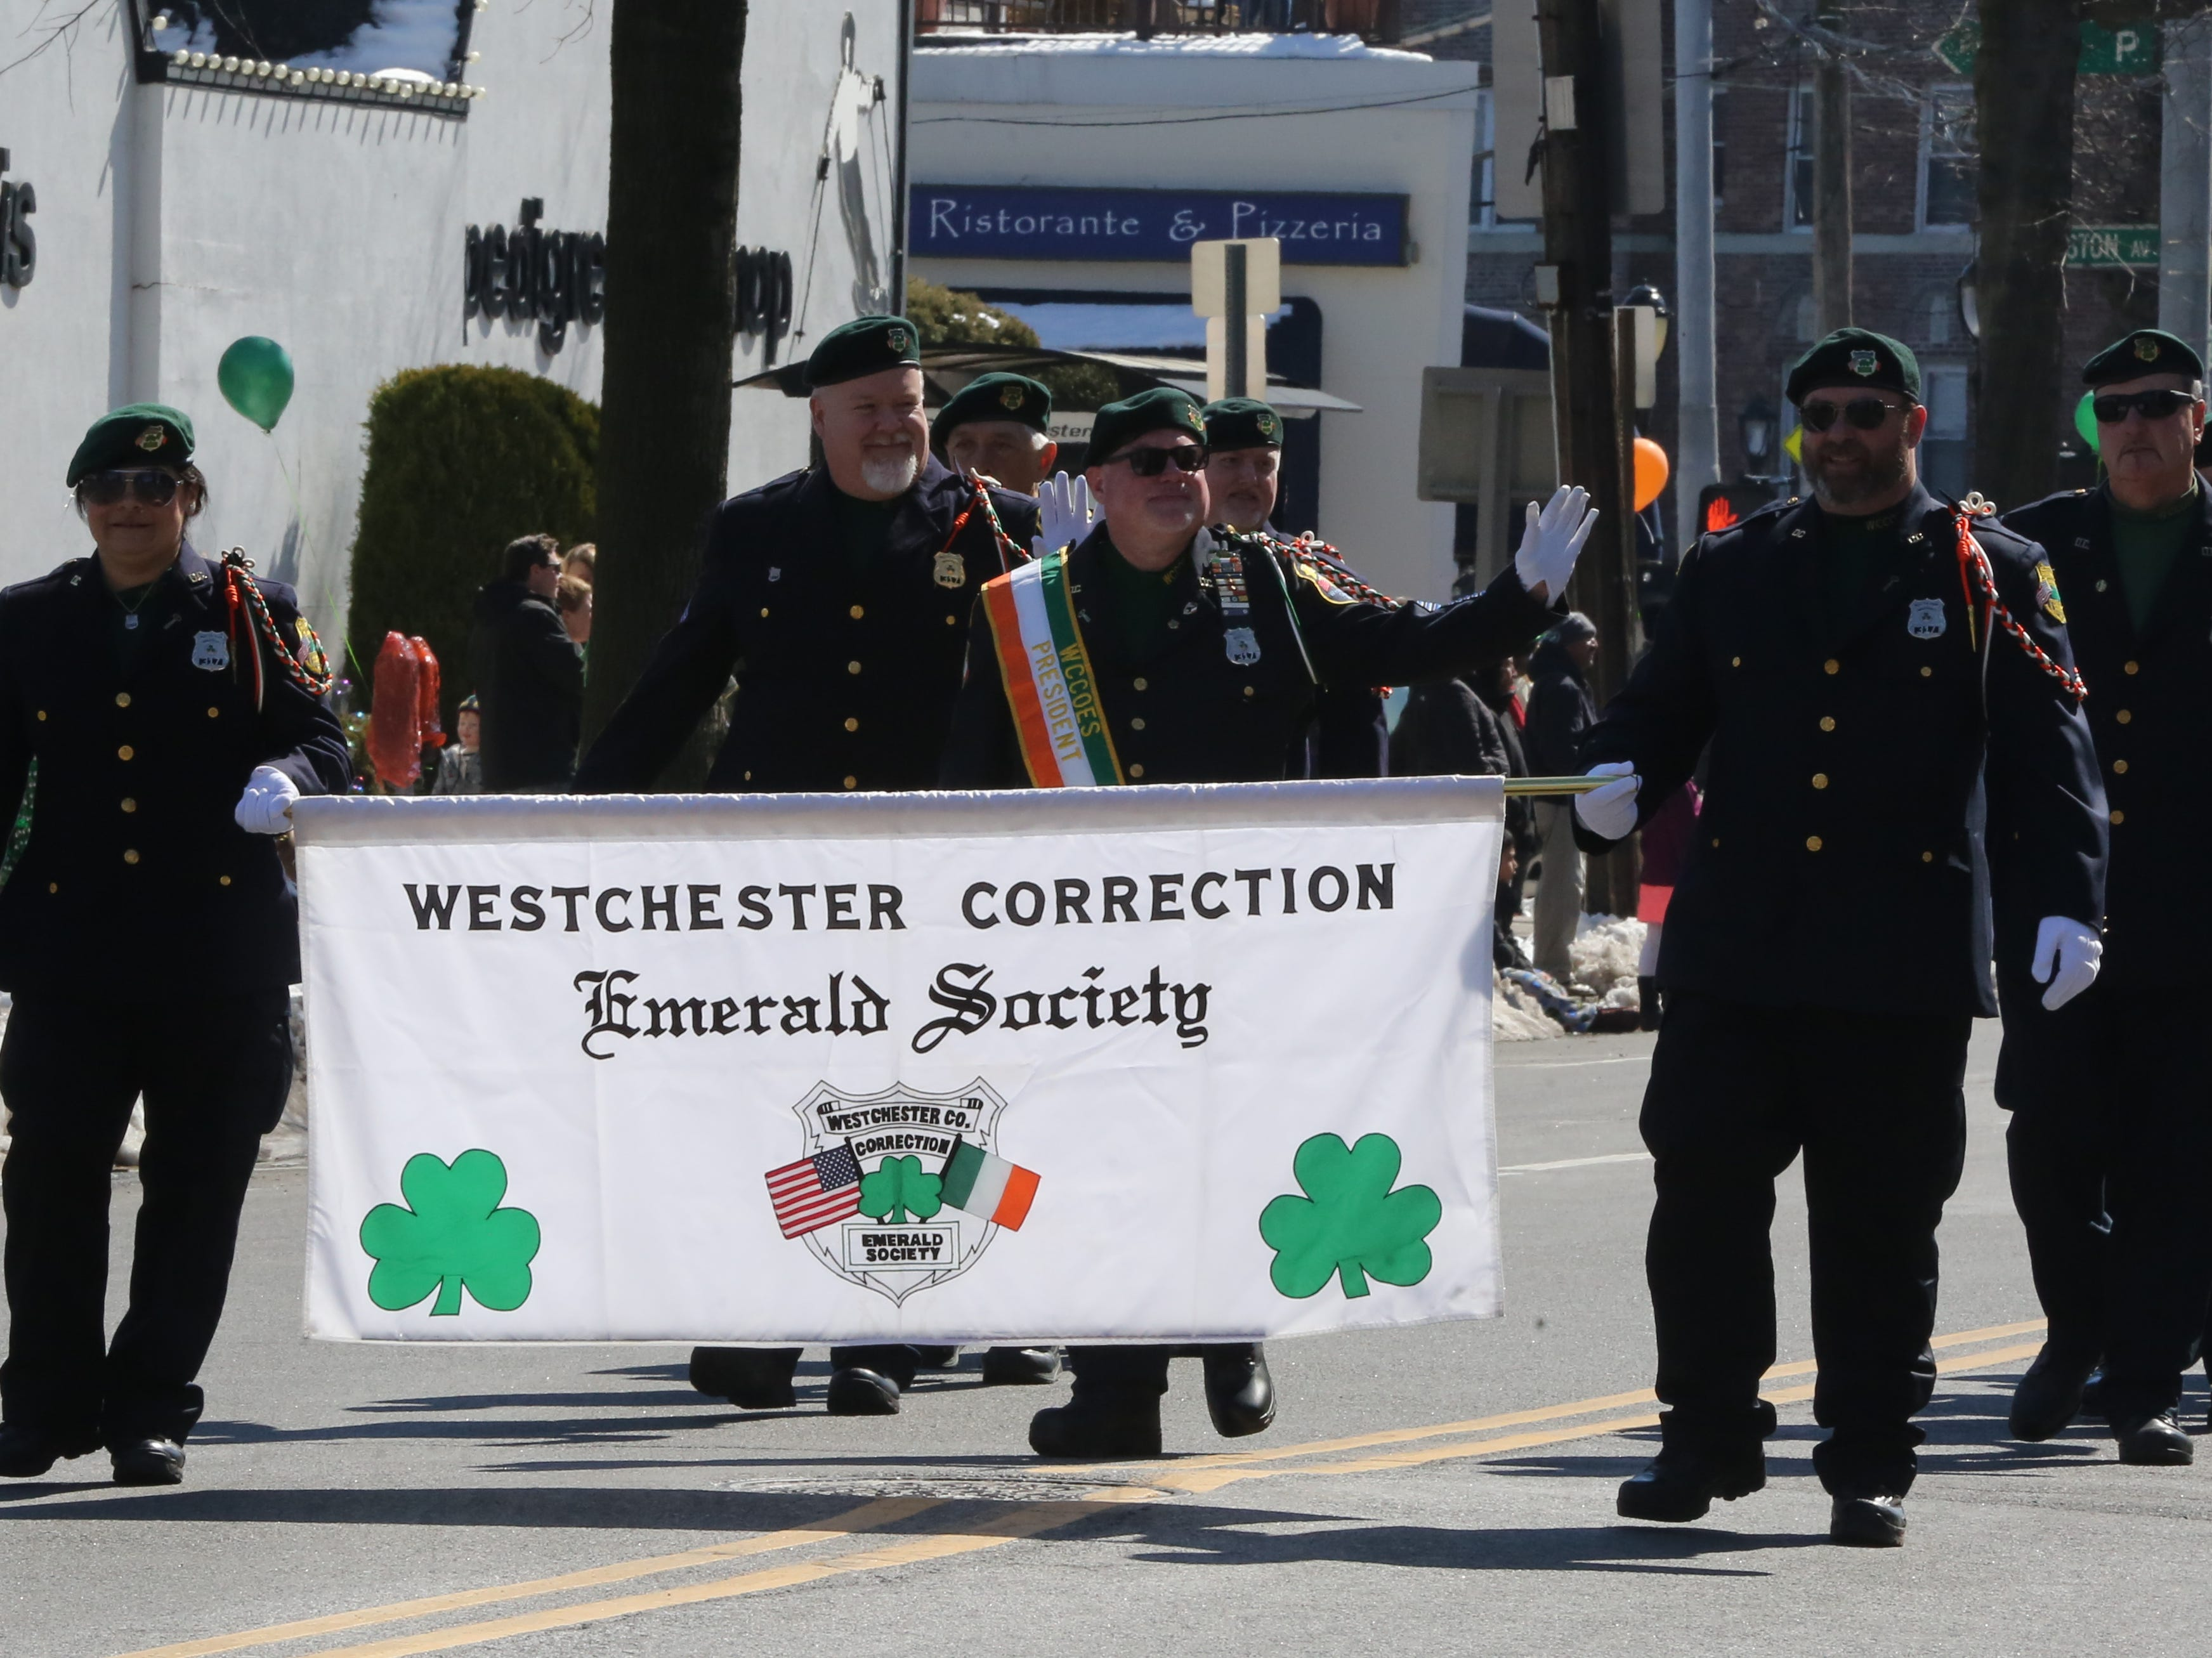 The 22nd annual White Plains St. Patrick's Day parade along Mamaroneck Avenue in White Plains March 9, 2019.